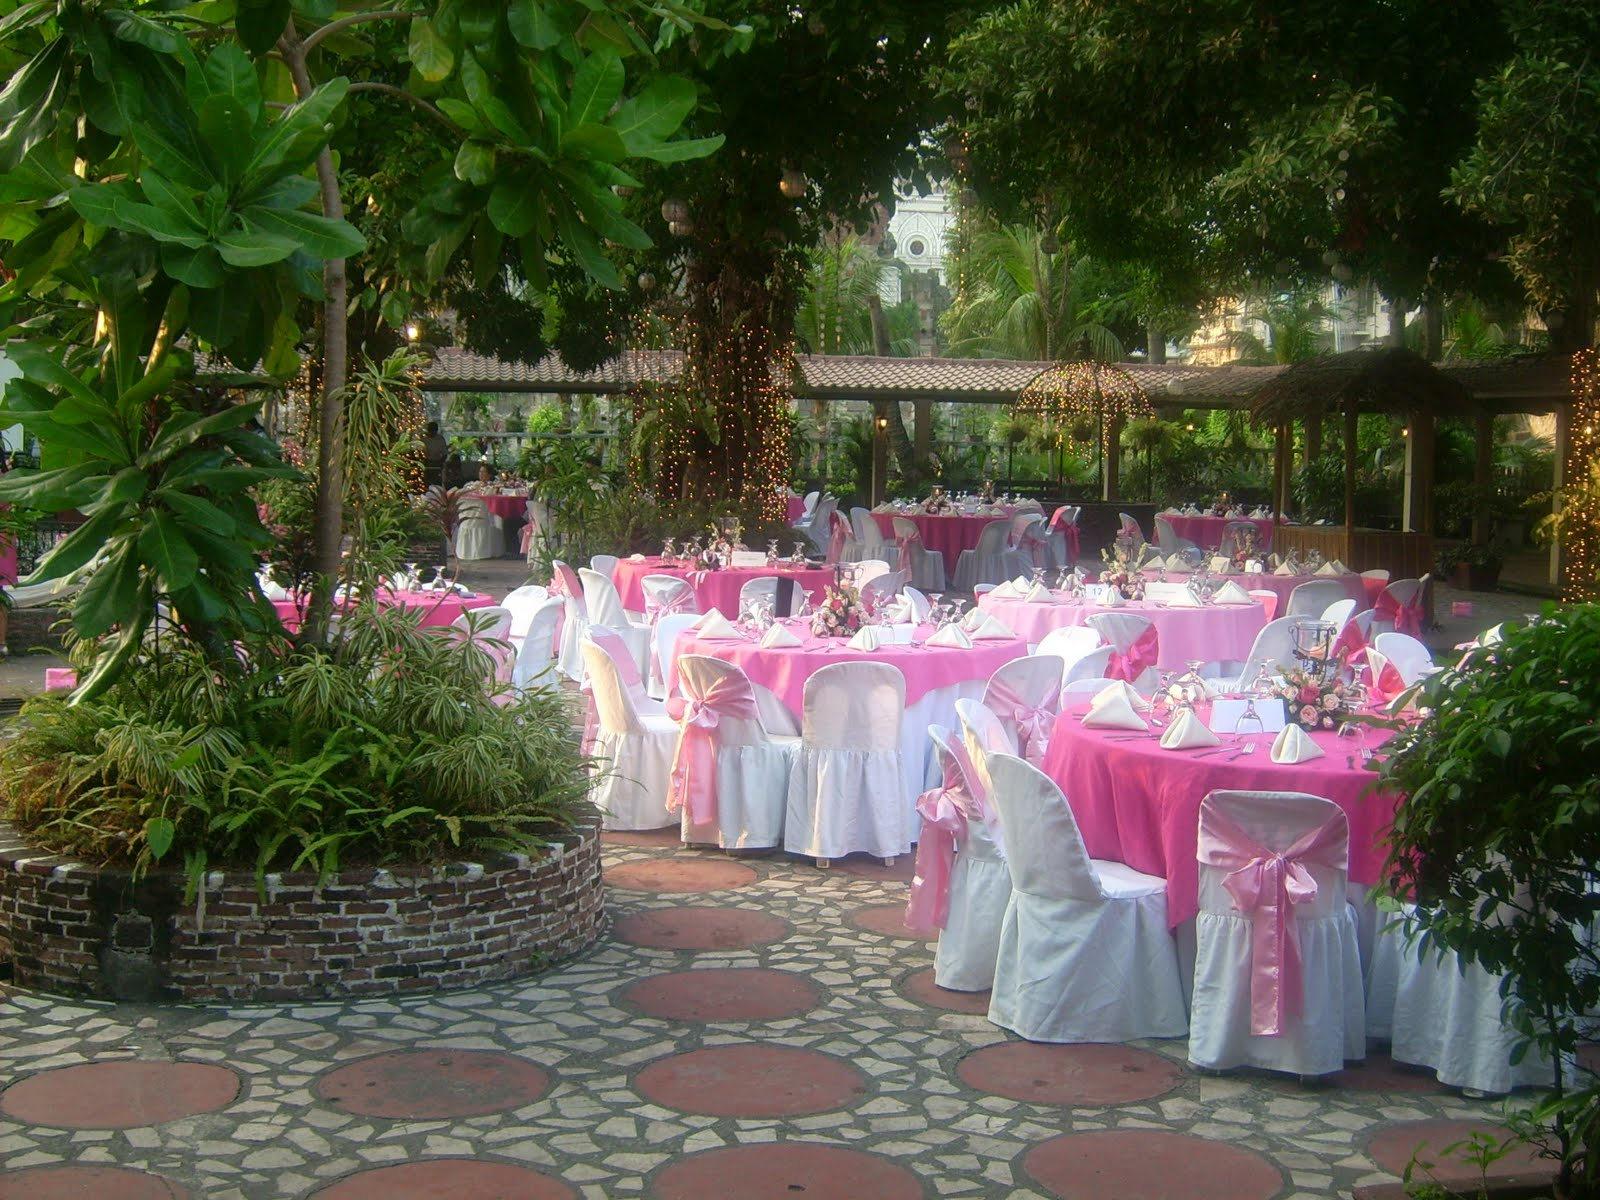 99 Wedding Ideas Backyard Wedding Reception Ideas Australia